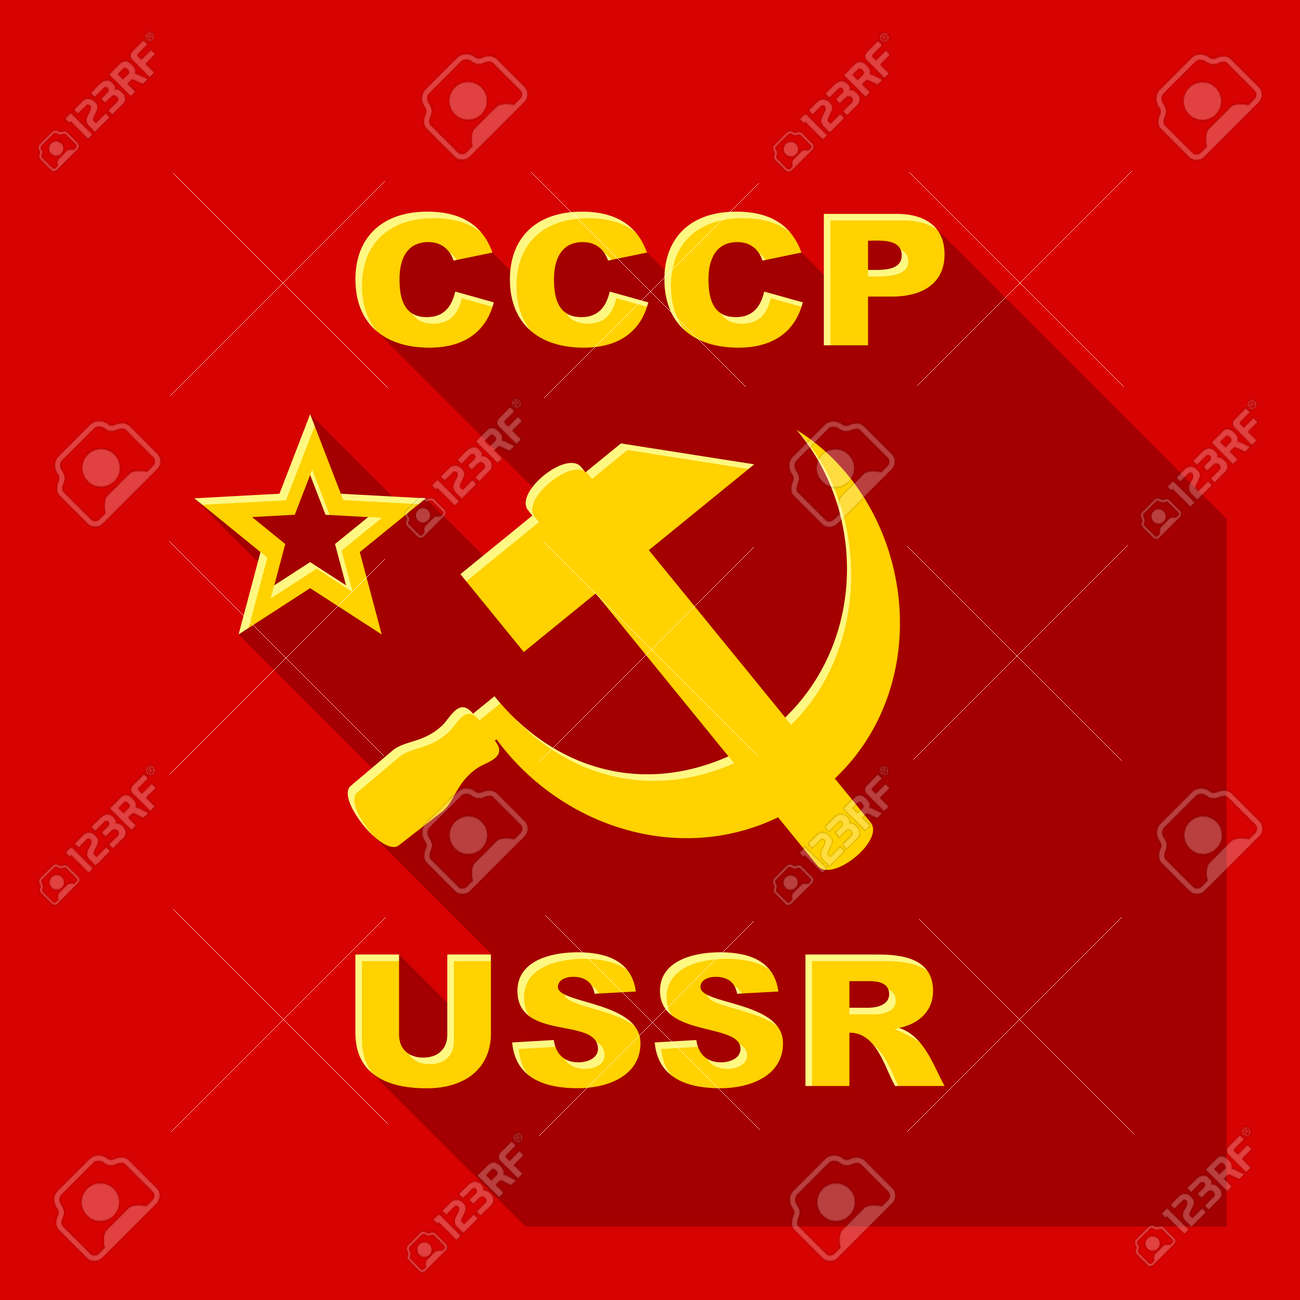 Symbols Of The Ussr Yellow Star Sickle And Hammer On A Red